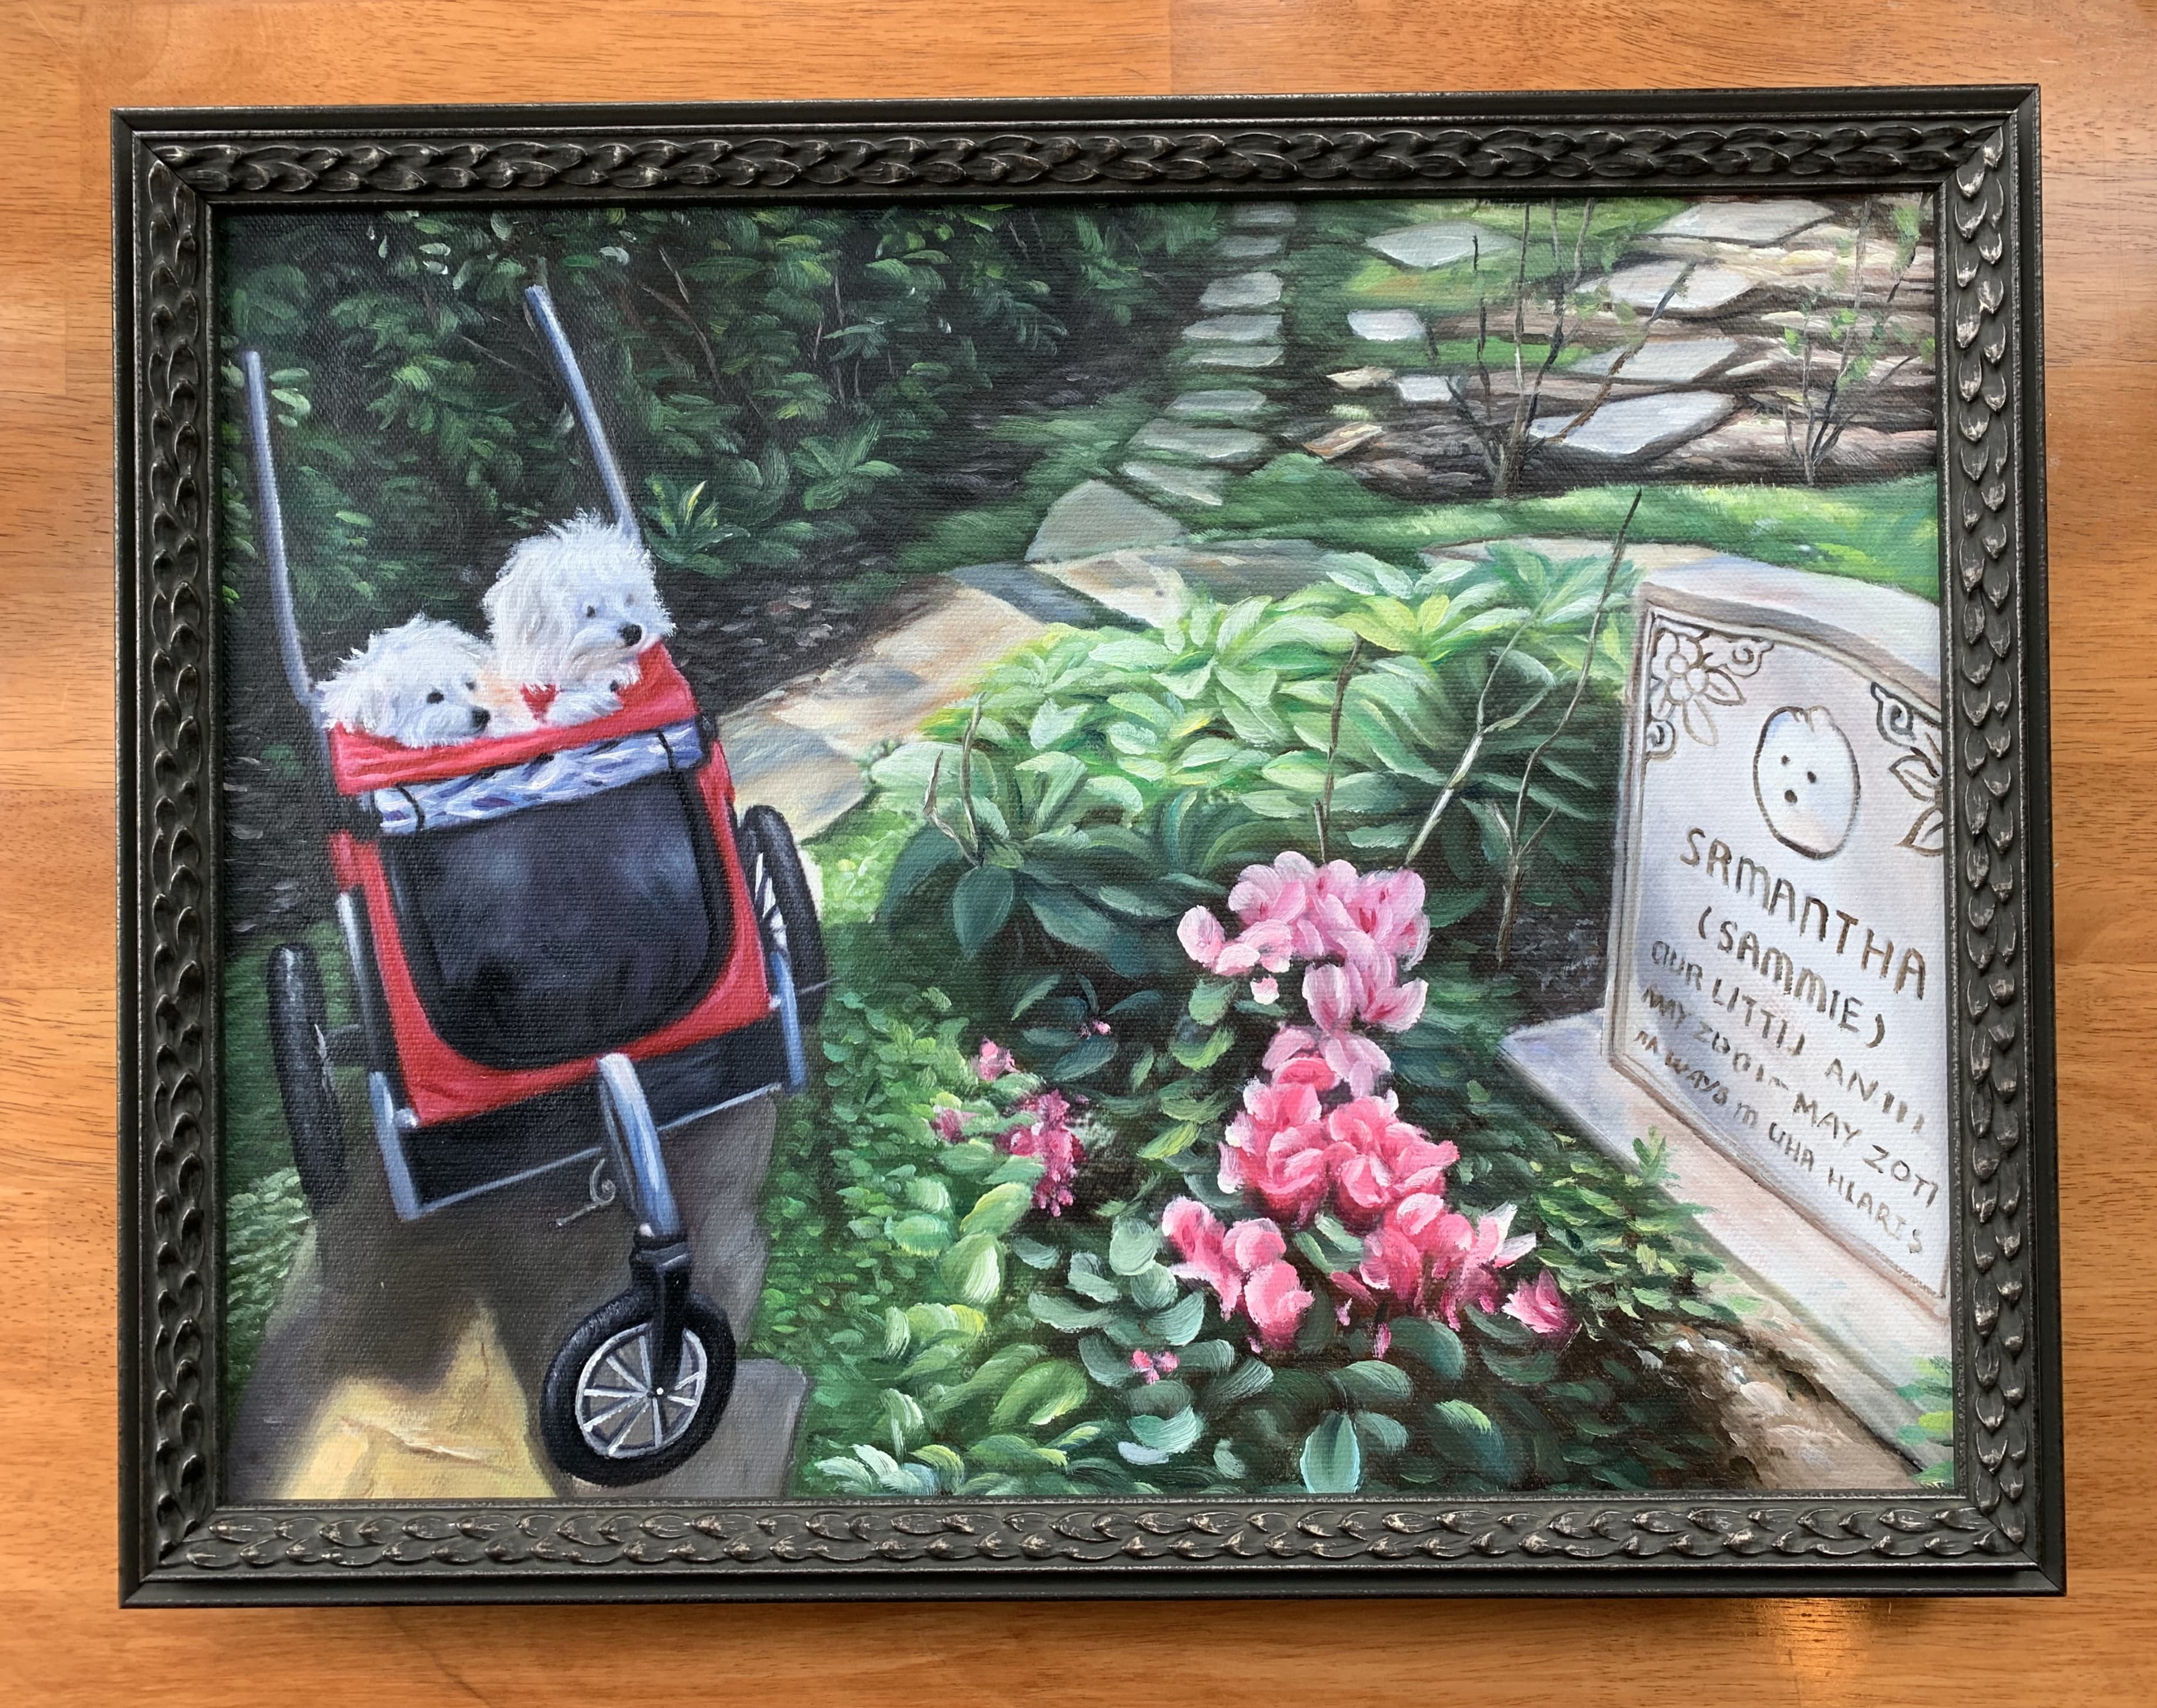 Two dogs in a stroller looking at a gravestone, as an oil painting in an intimidating frame